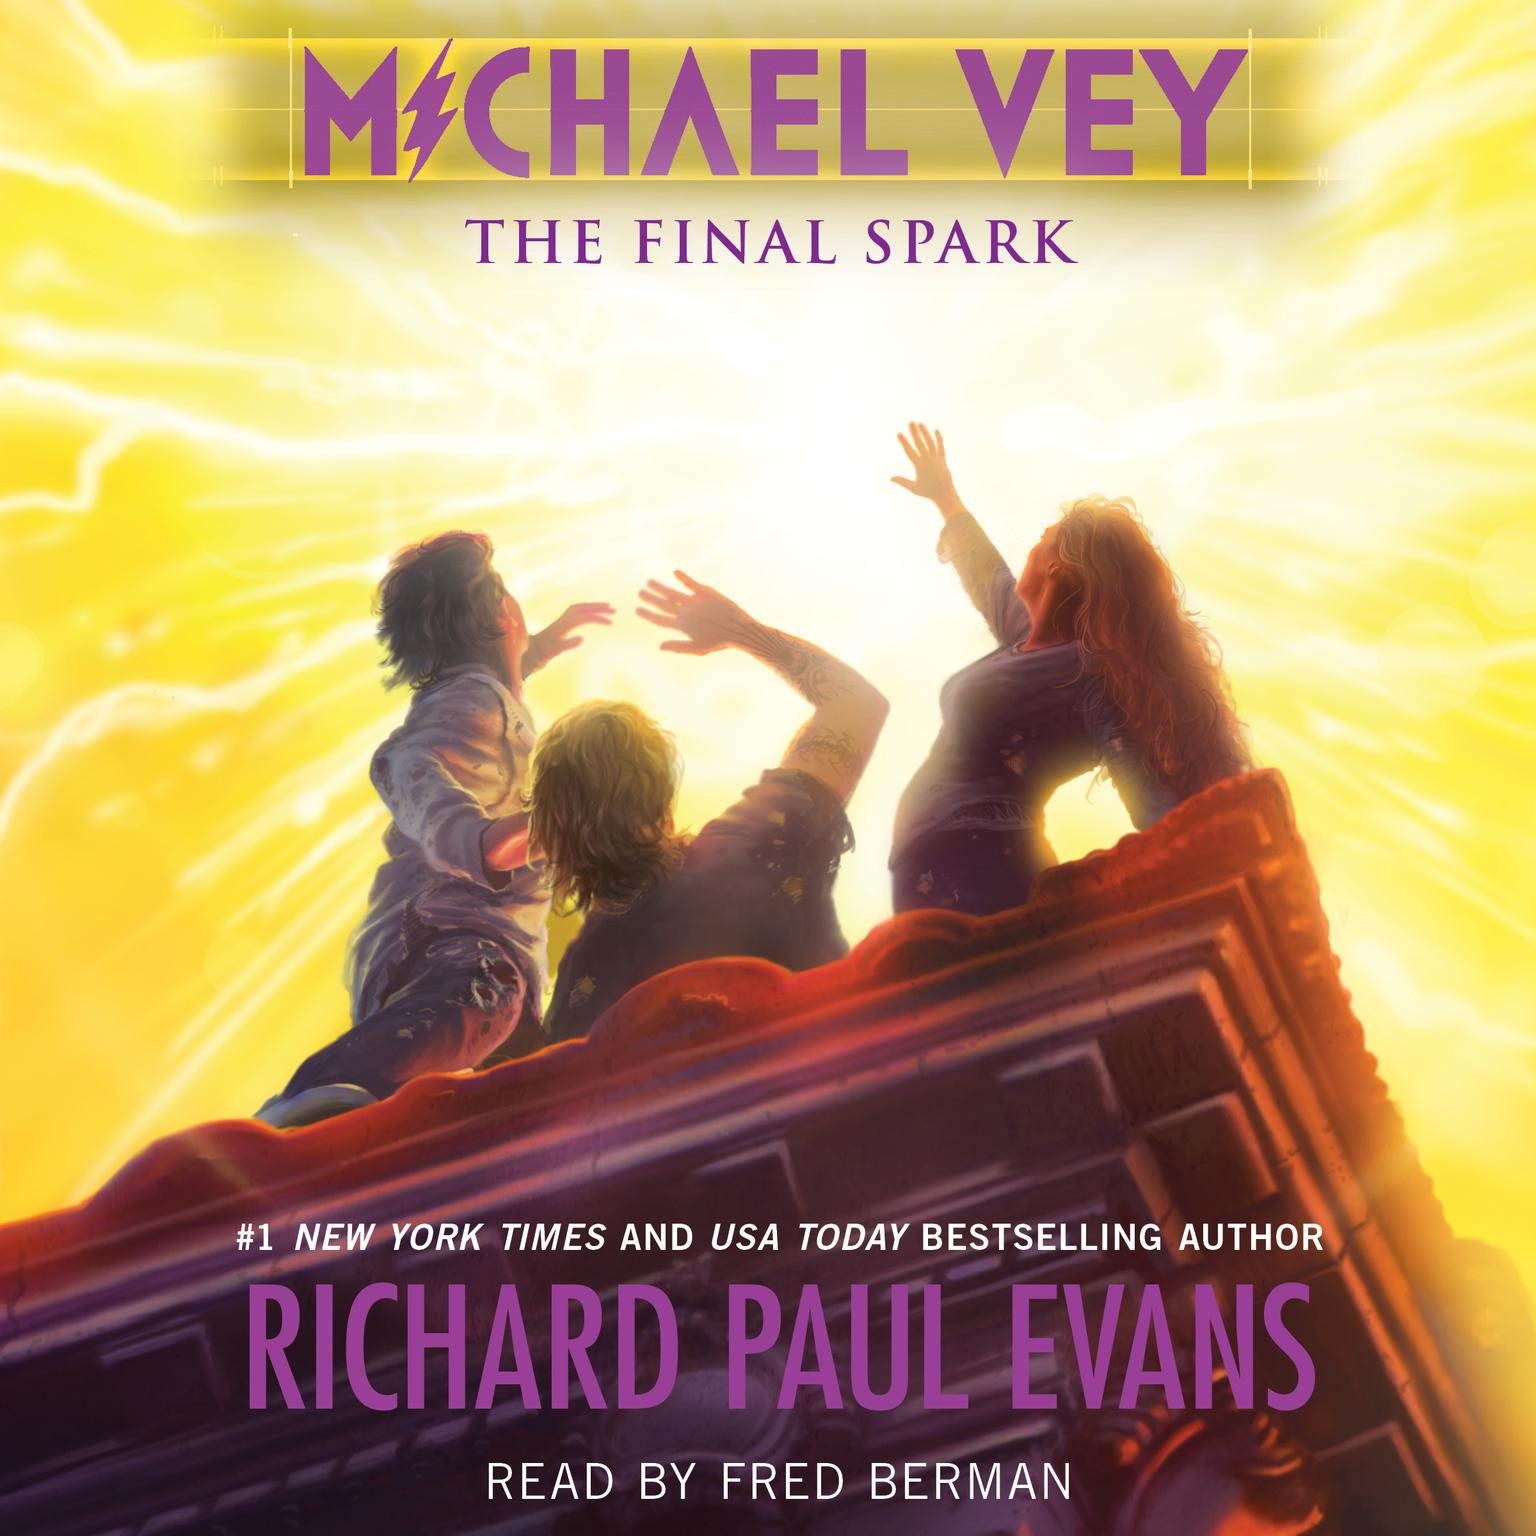 Printable Michael Vey 7: The Final Spark Audiobook Cover Art